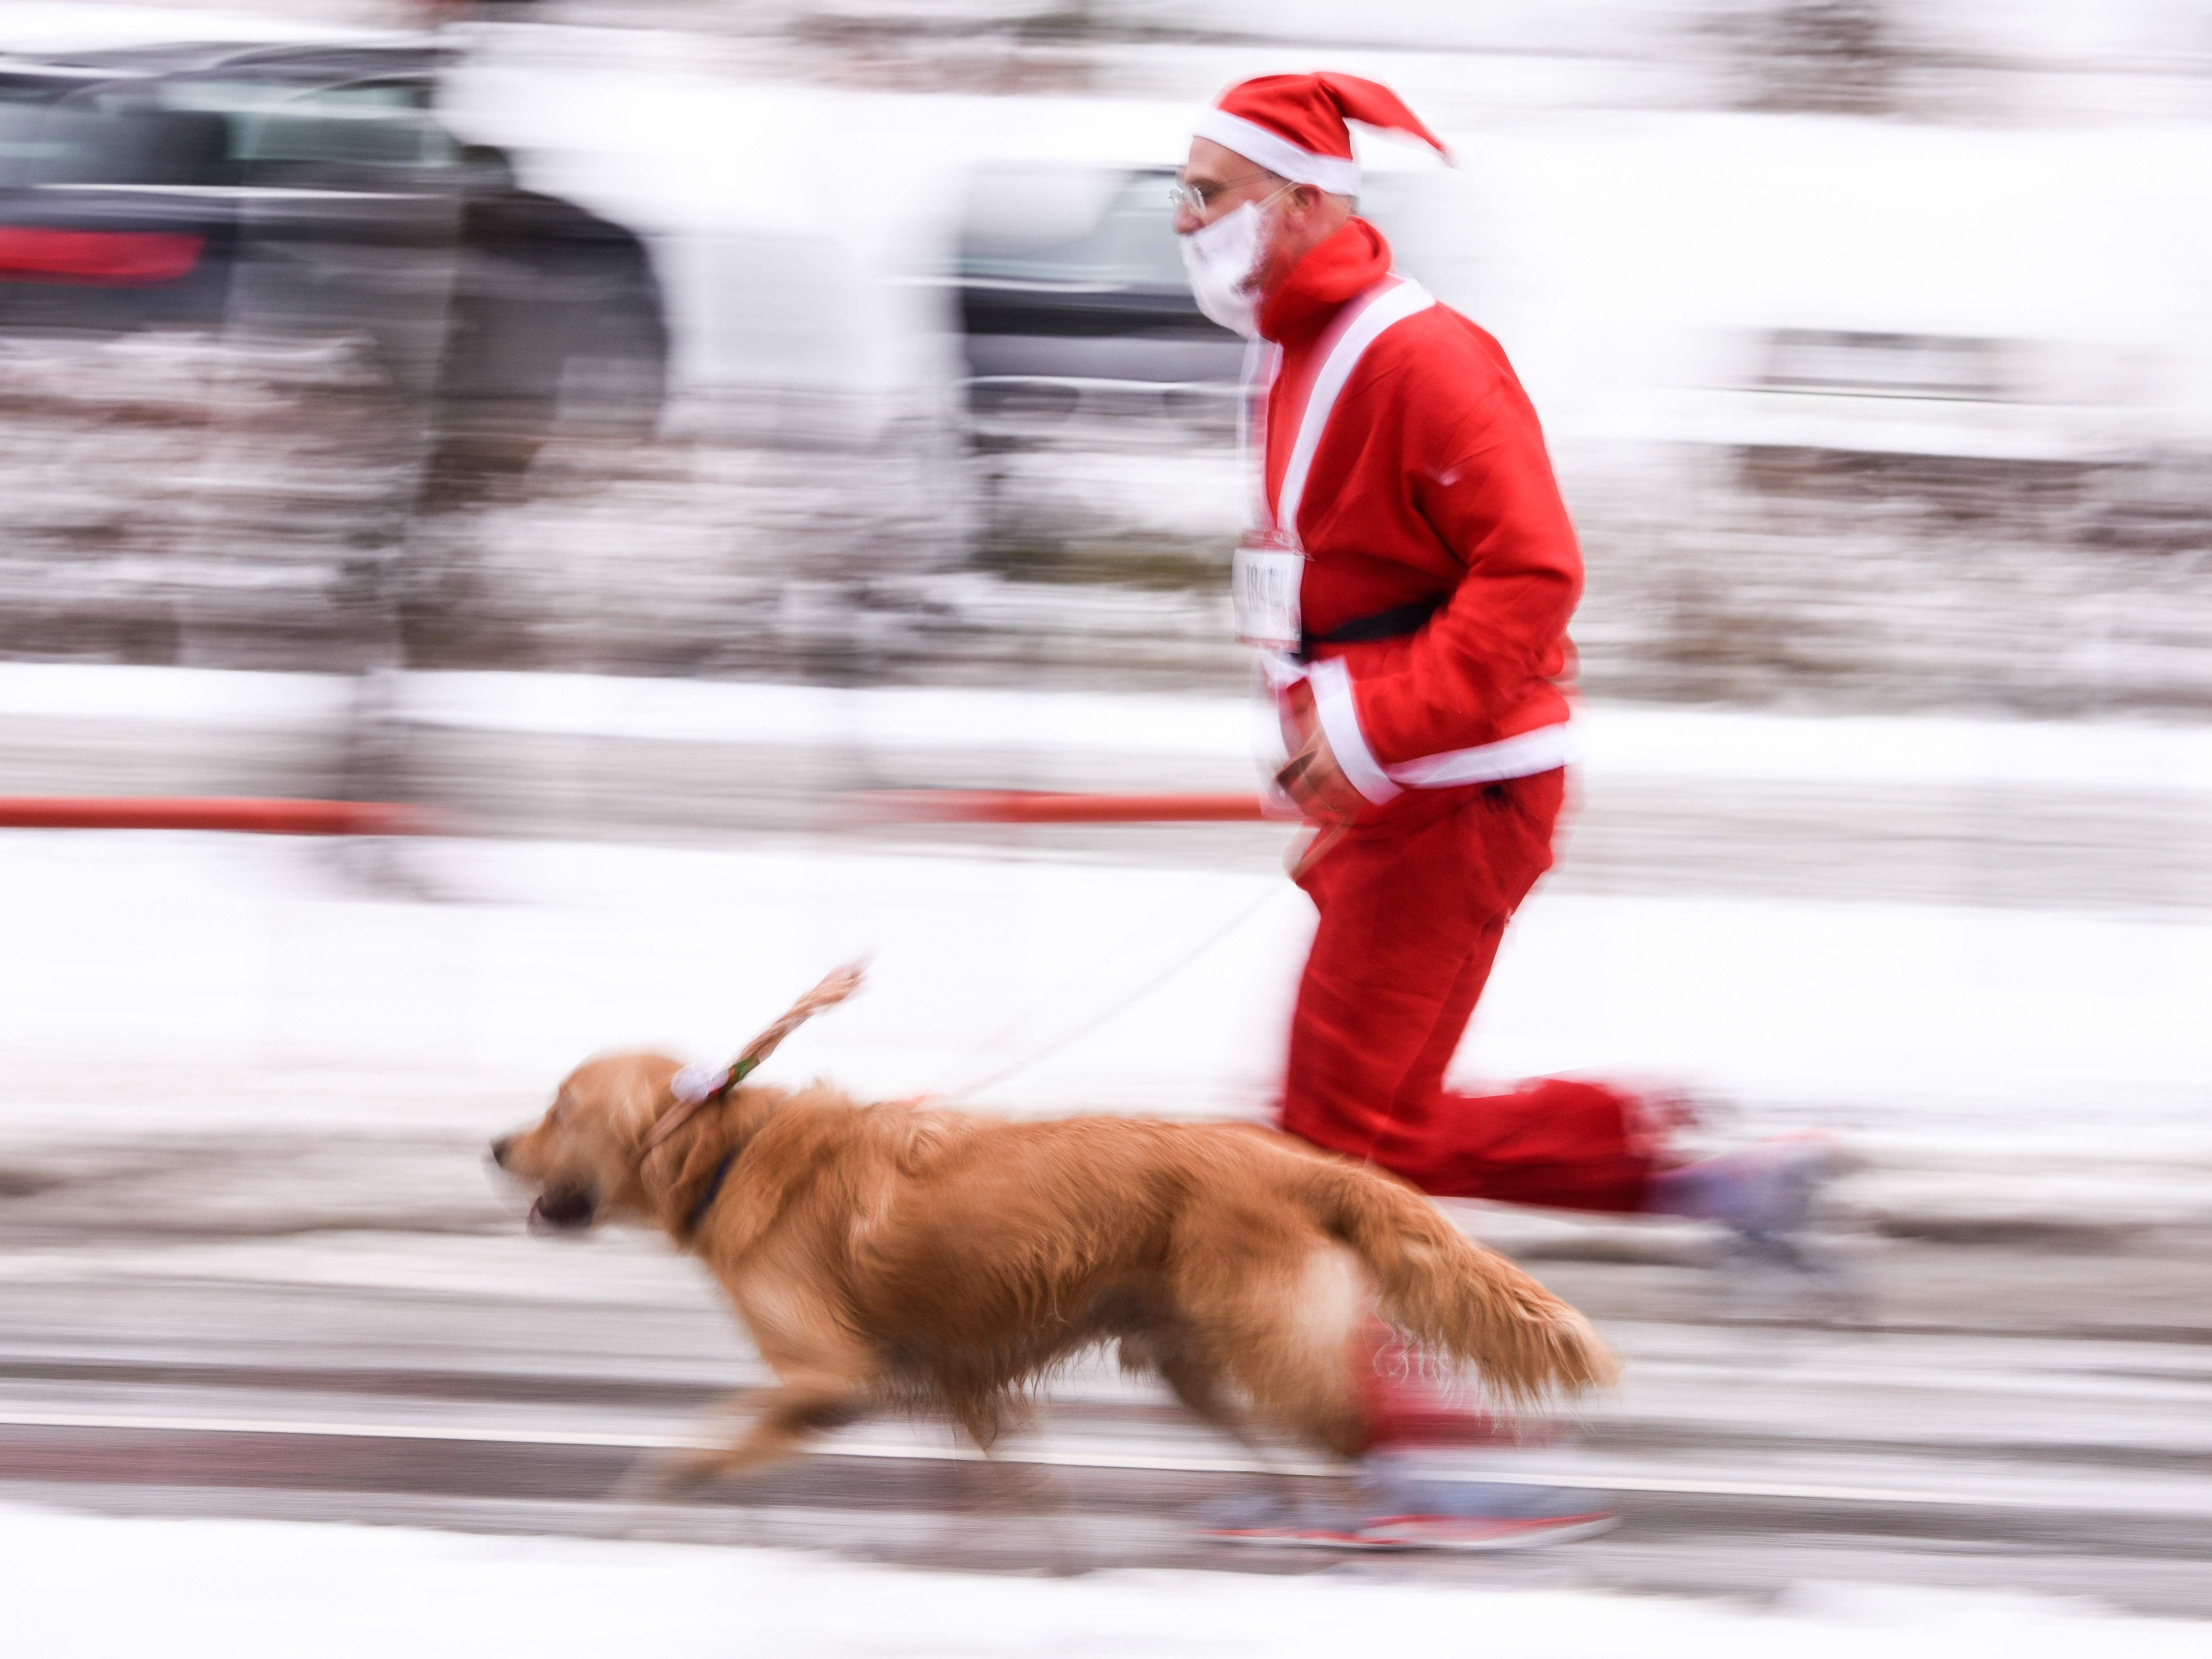 A man dressed as Santa Claus runs with his dog as he takes part in a charity race in Pristina, Kosovo, Dec. 16, 2018 to raise money for families in need.